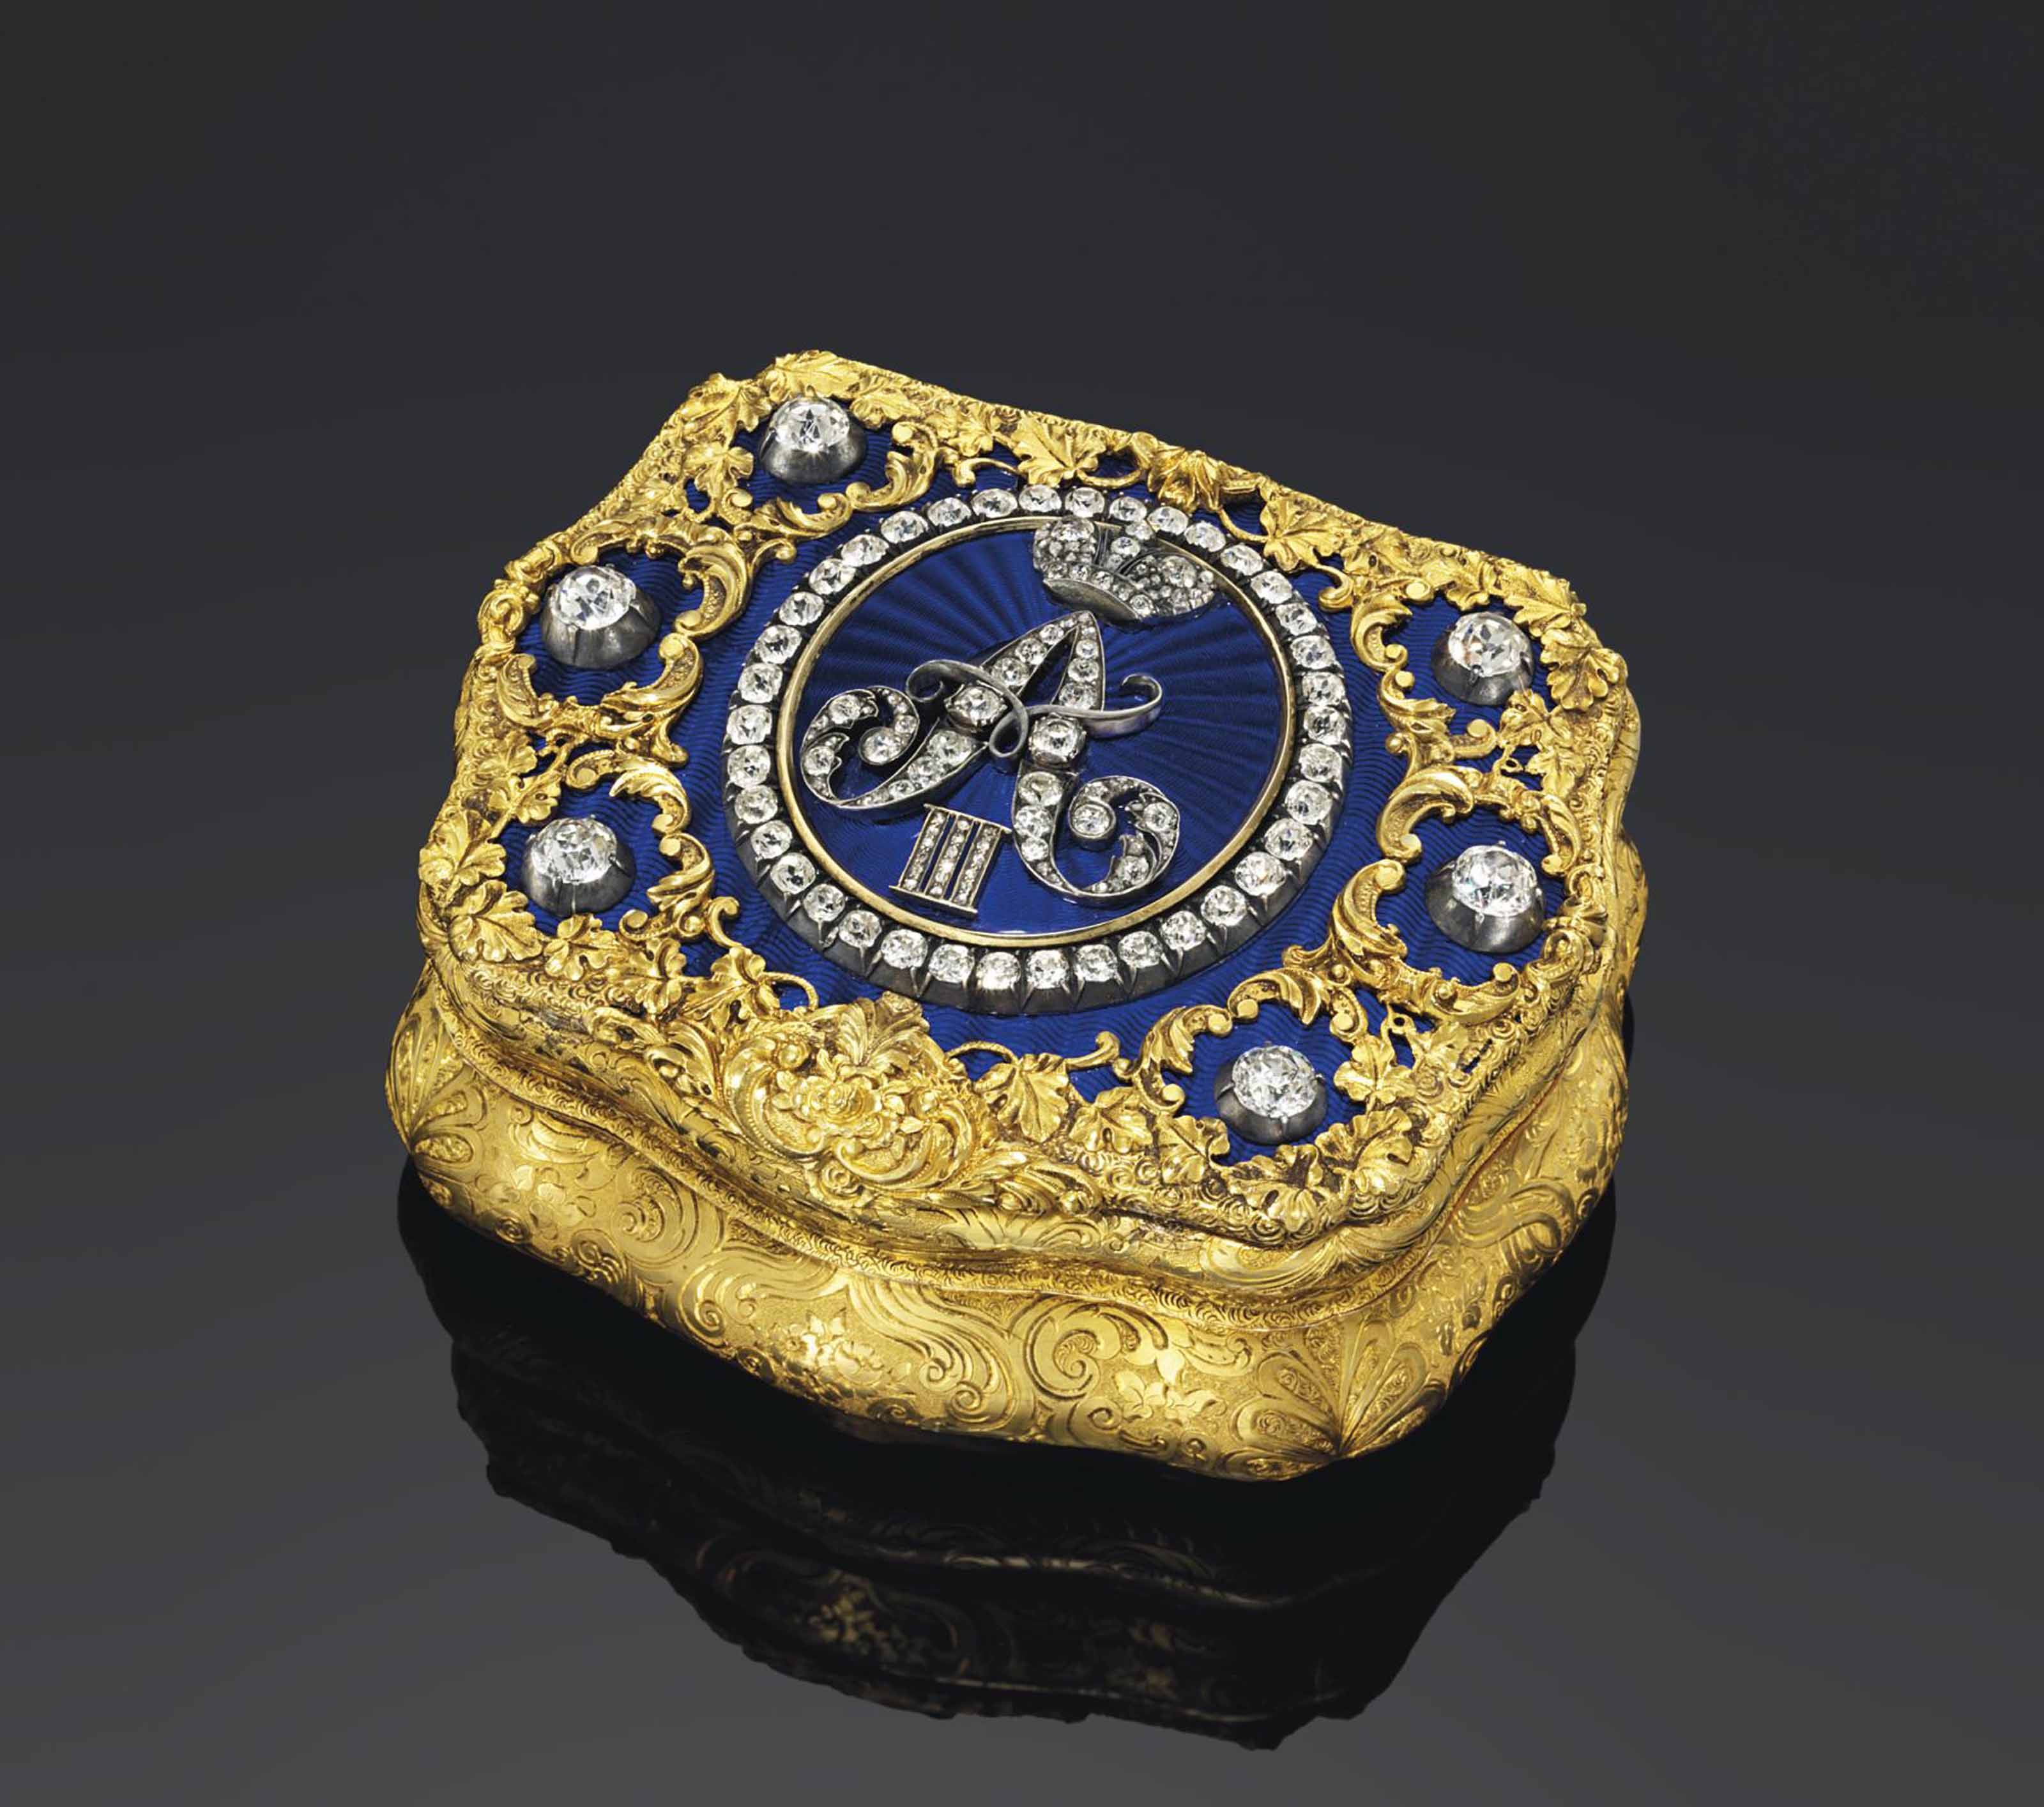 A RUSSIAN IMPERIAL PASTE-SET ENAMELLED GOLD PRESENTATION SNUFF-BOX